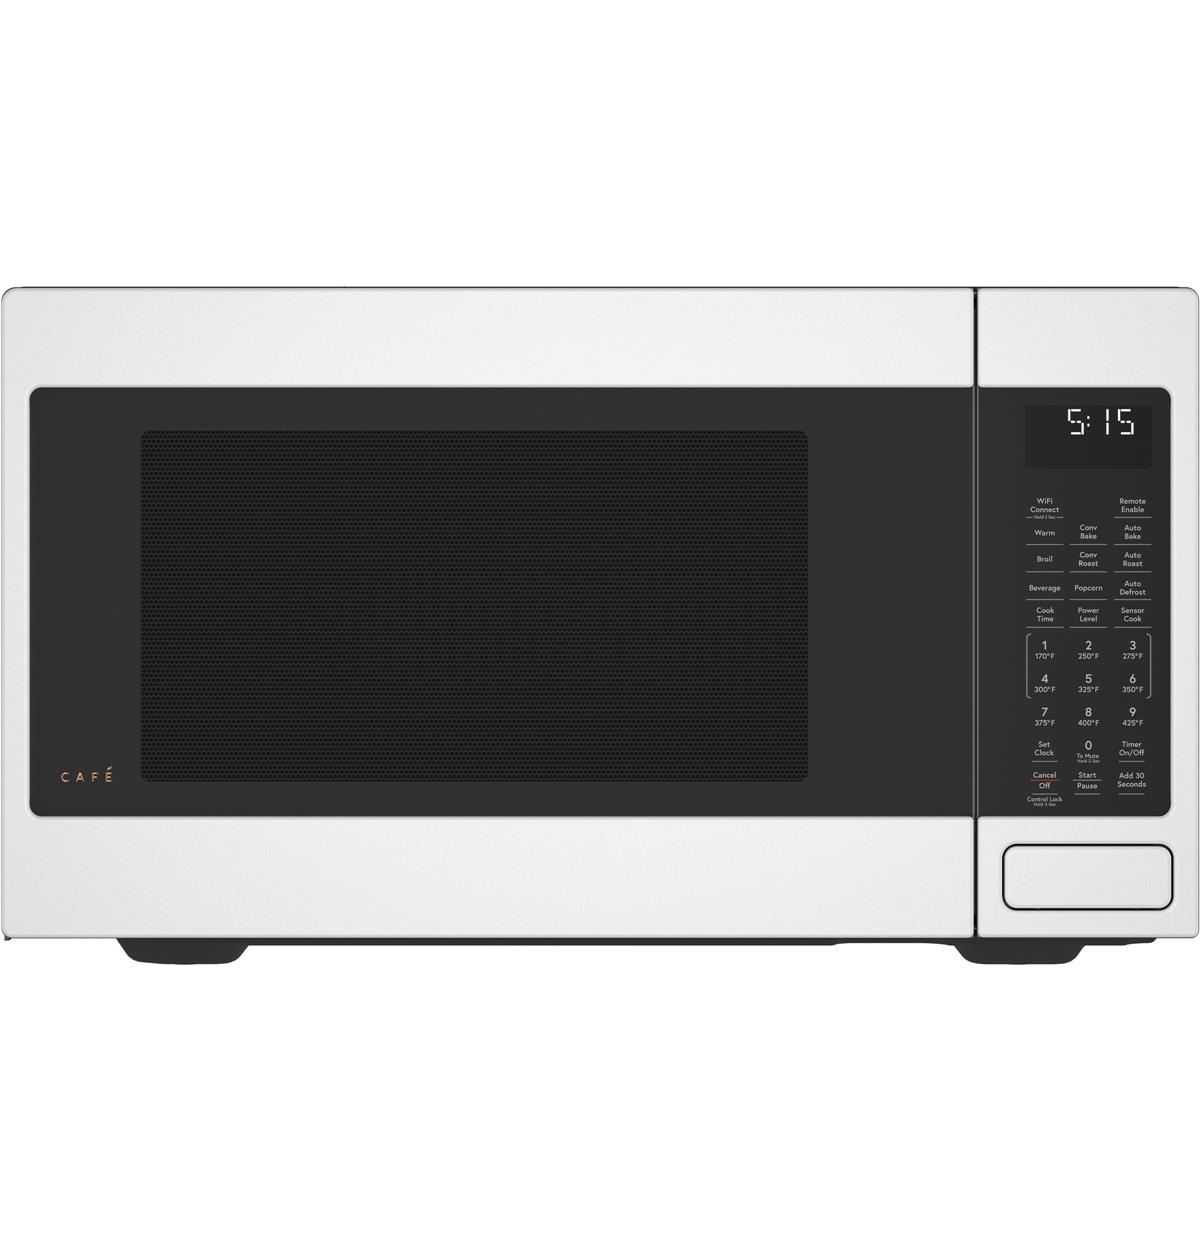 Café™ 1.5 Cu. Ft. Smart Countertop Convection/Microwave Oven